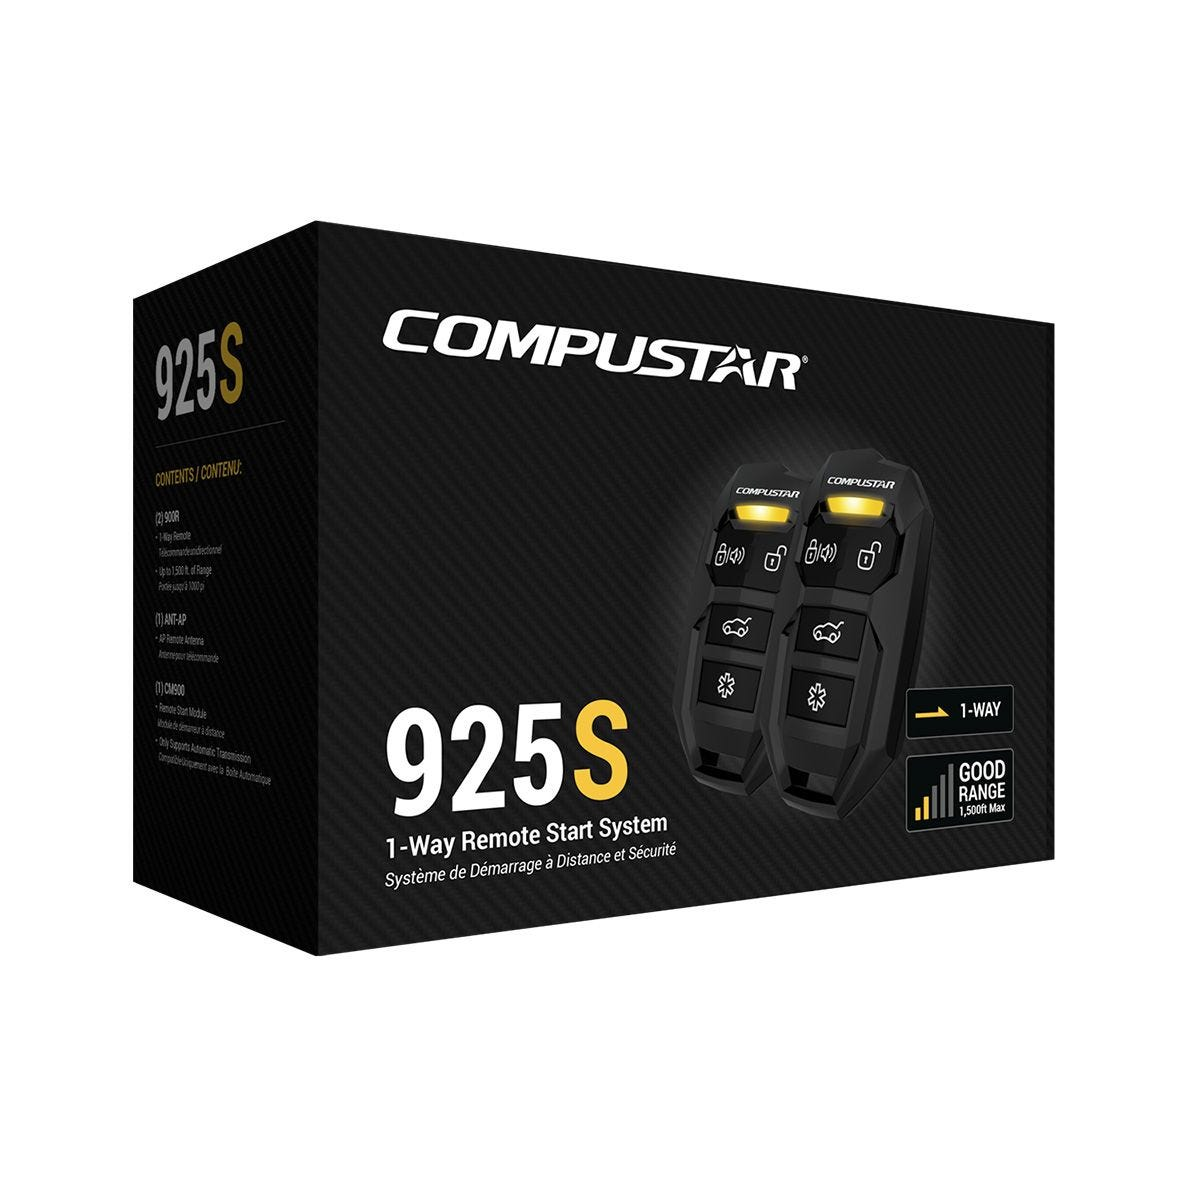 Compustar CS925-S All-in-One Remote Start Bundle with 1500 foot range